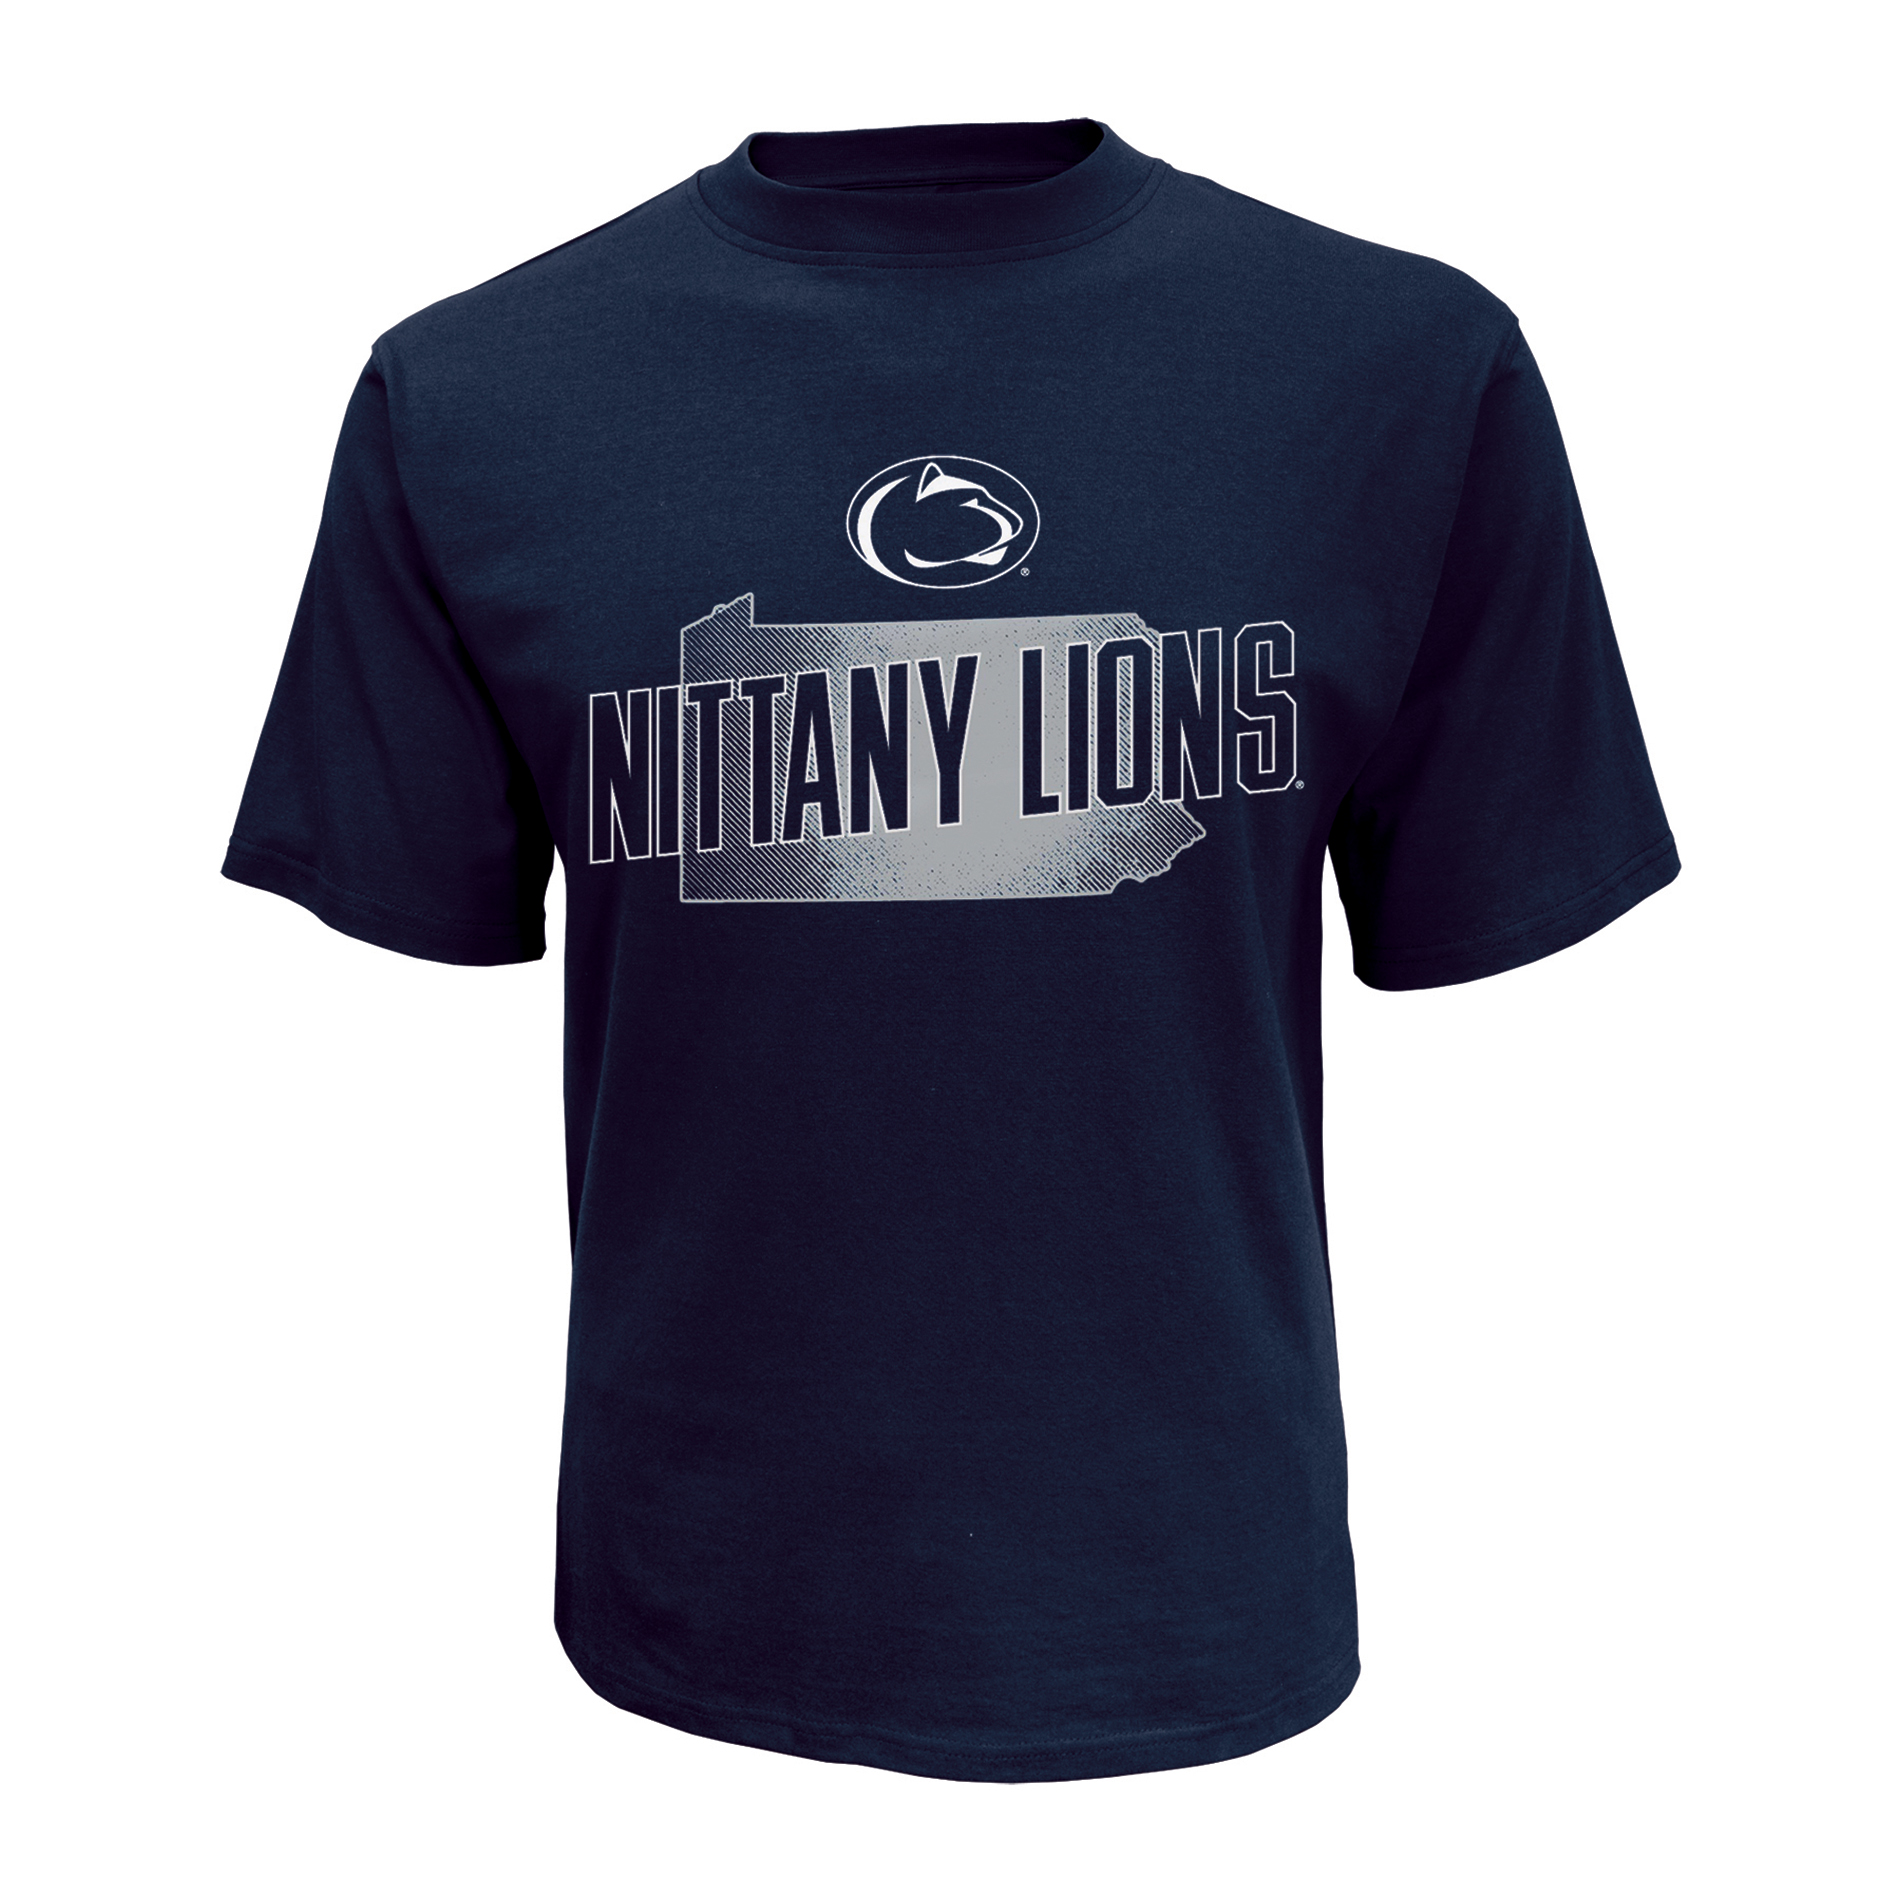 petite NCAA Men's Big & Tall Short-Sleeve T-Shirt - Penn State Nittany Lions, Size: 3XL